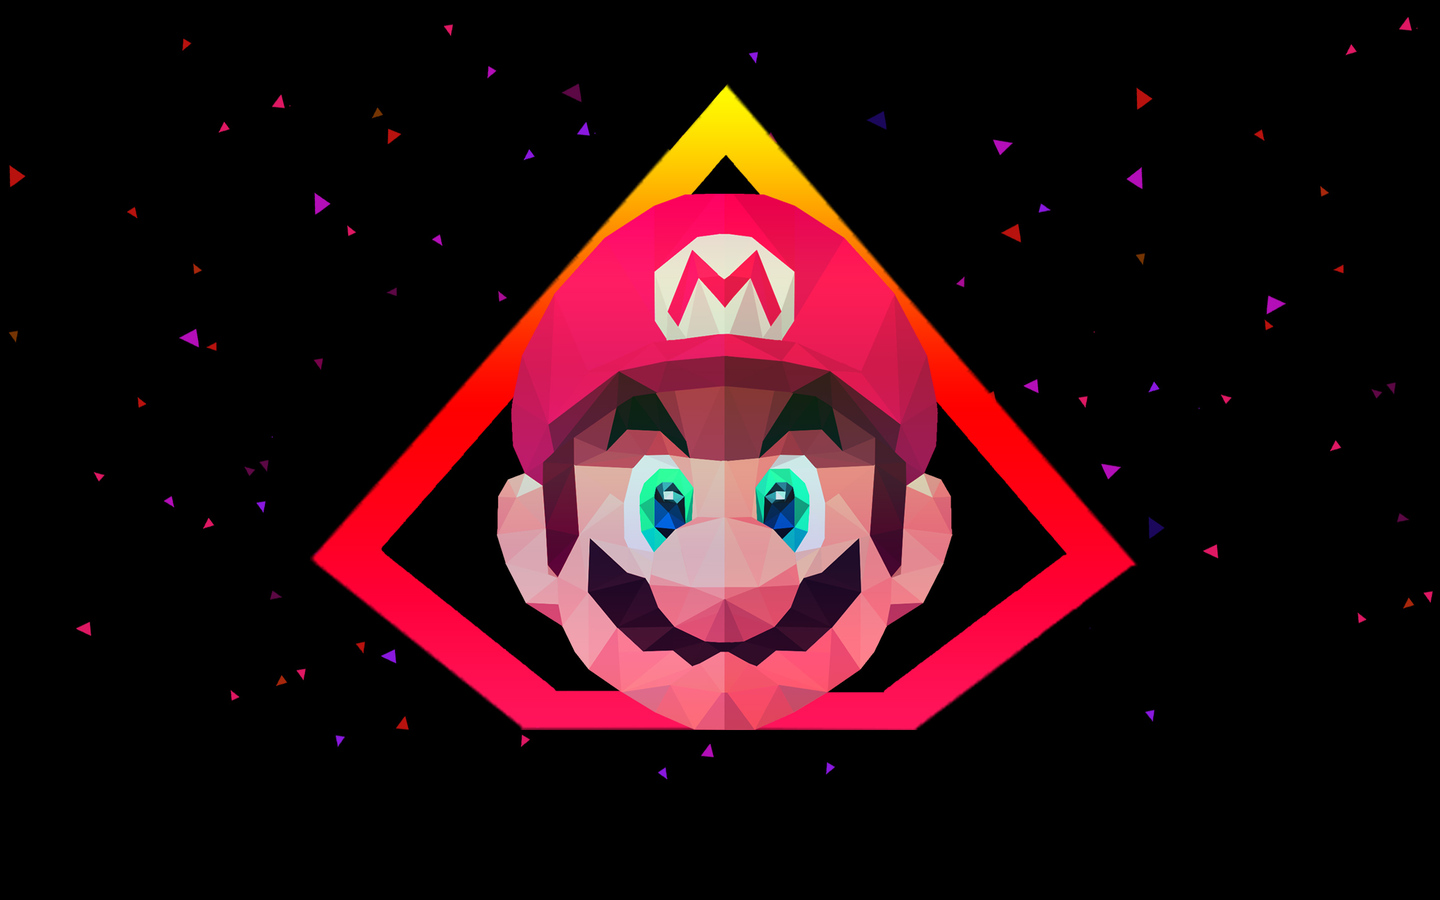 mario-low-poly-art-1r.jpg